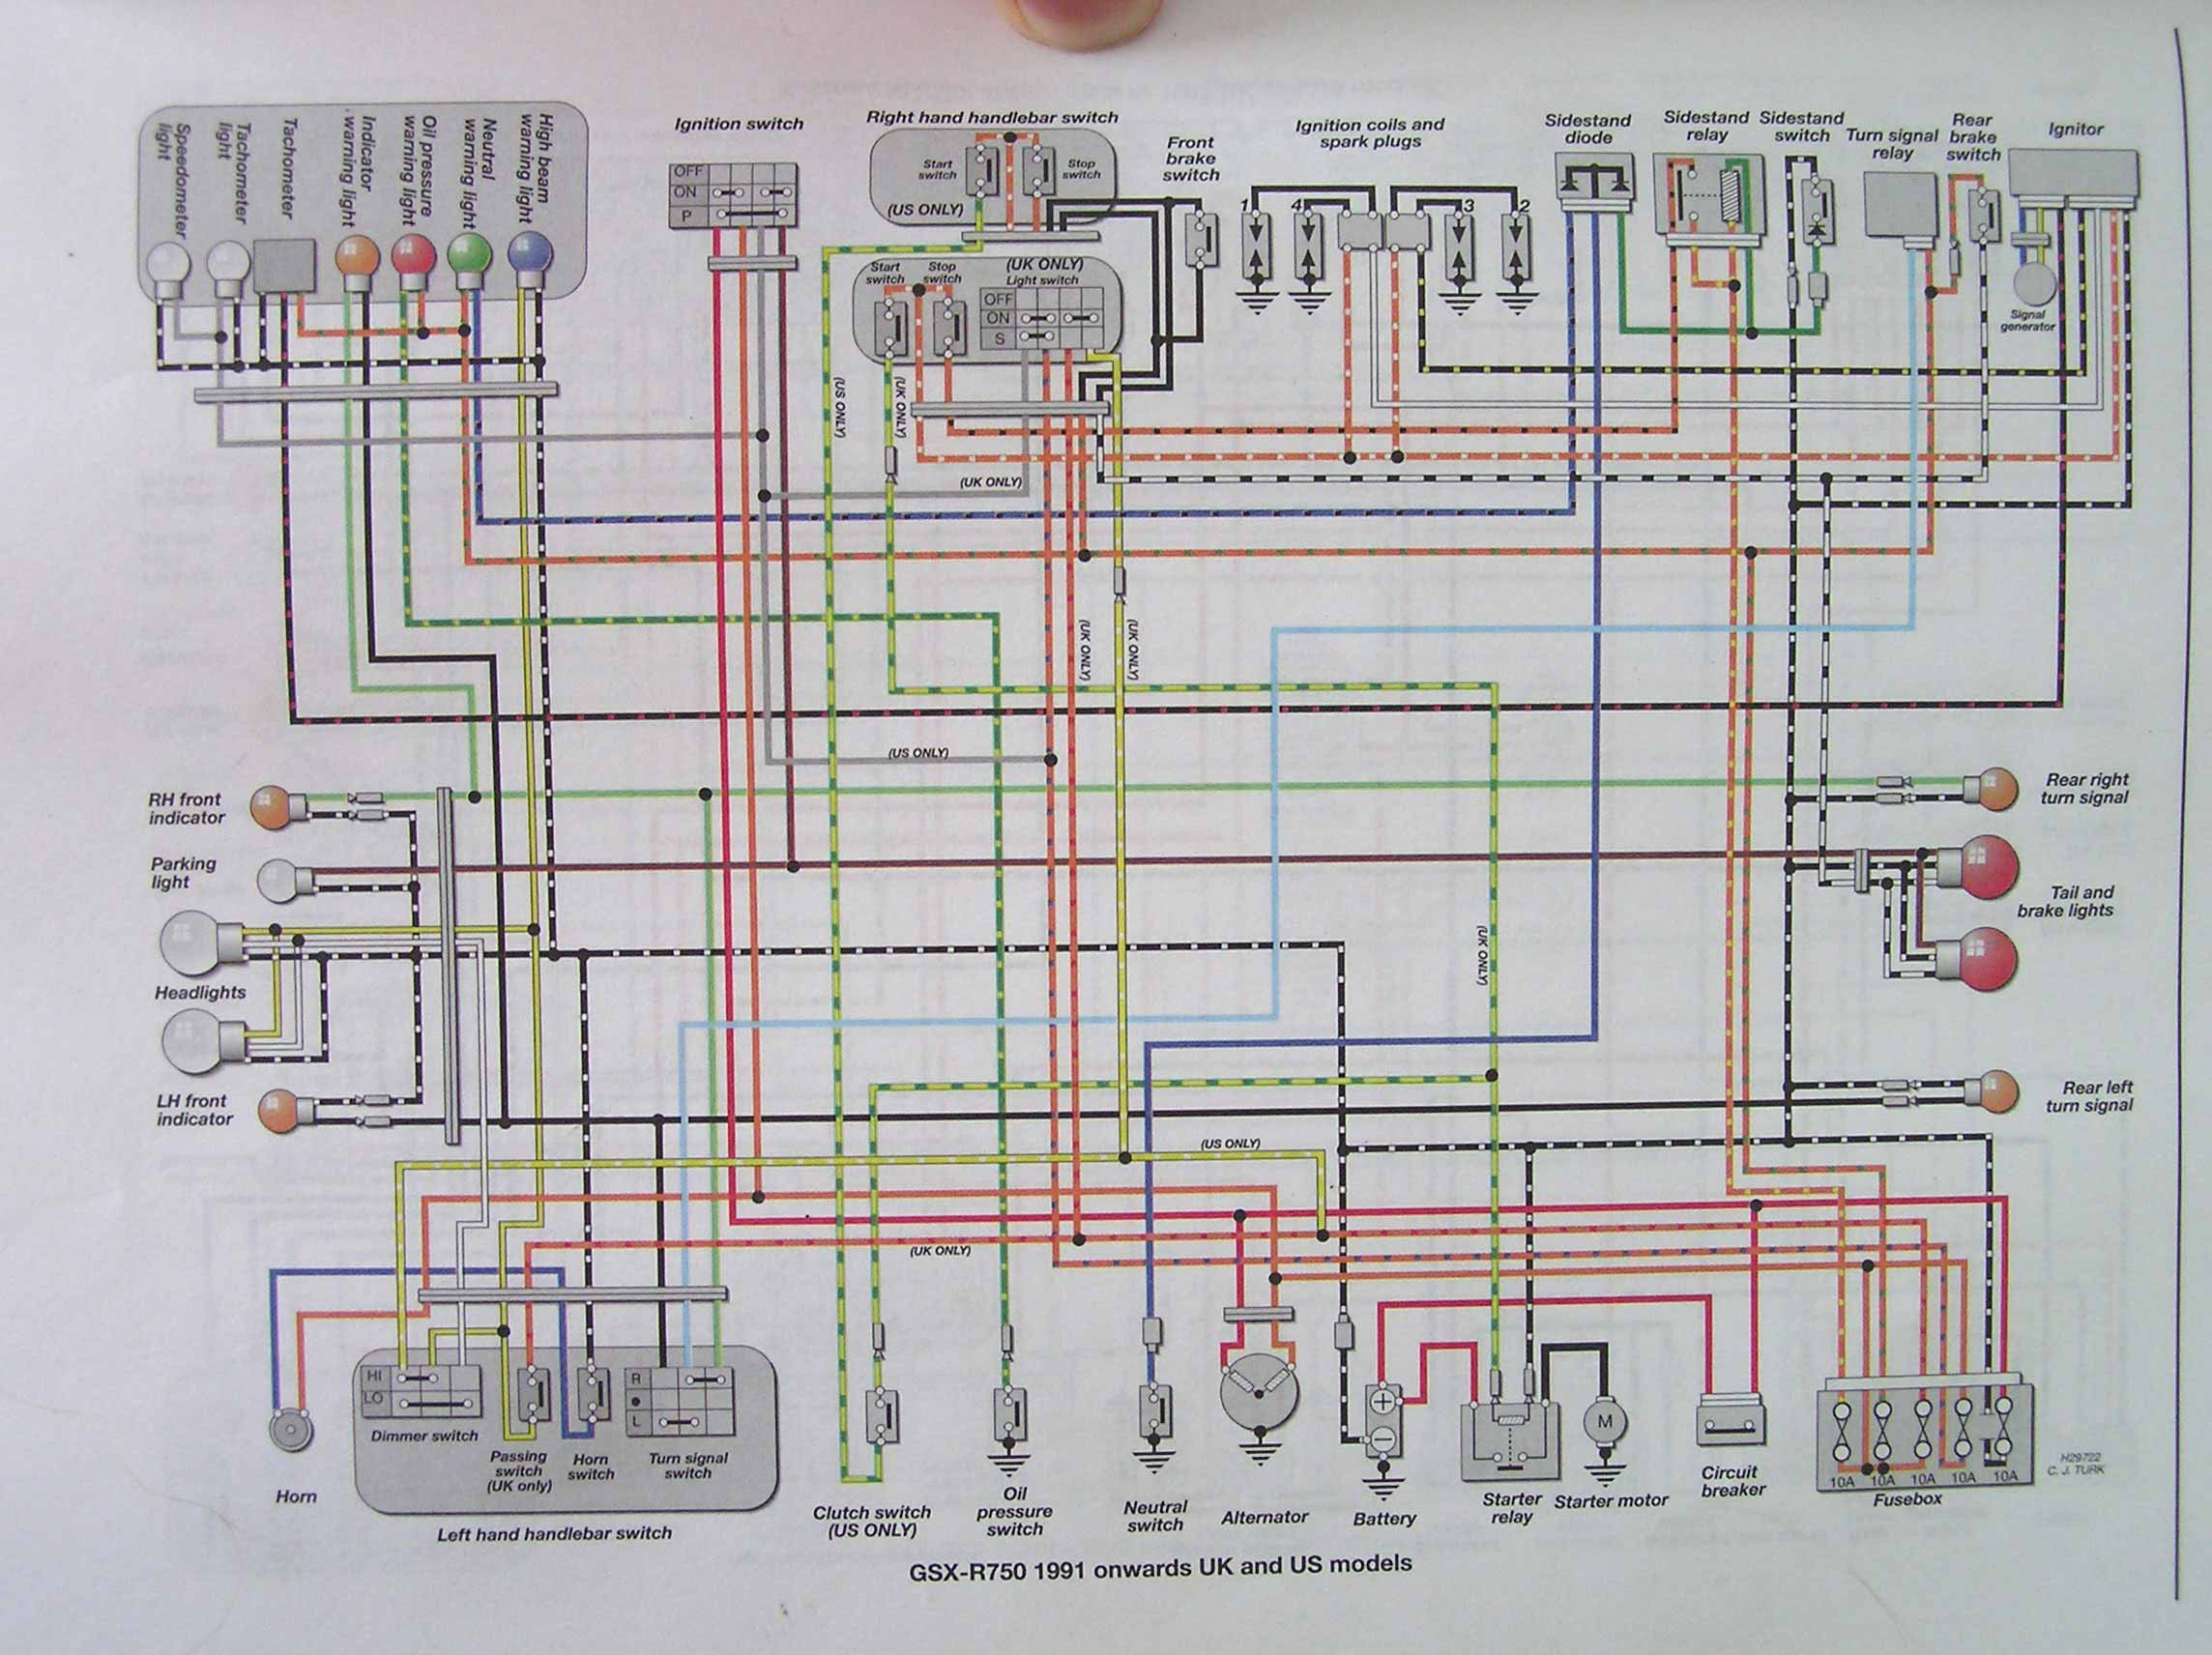 gsxr 1100 wiring diagram suzuki motorcycle wiring diagram suzuki image suzuki wiring diagram motorcycle suzuki auto wiring diagram on suzuki